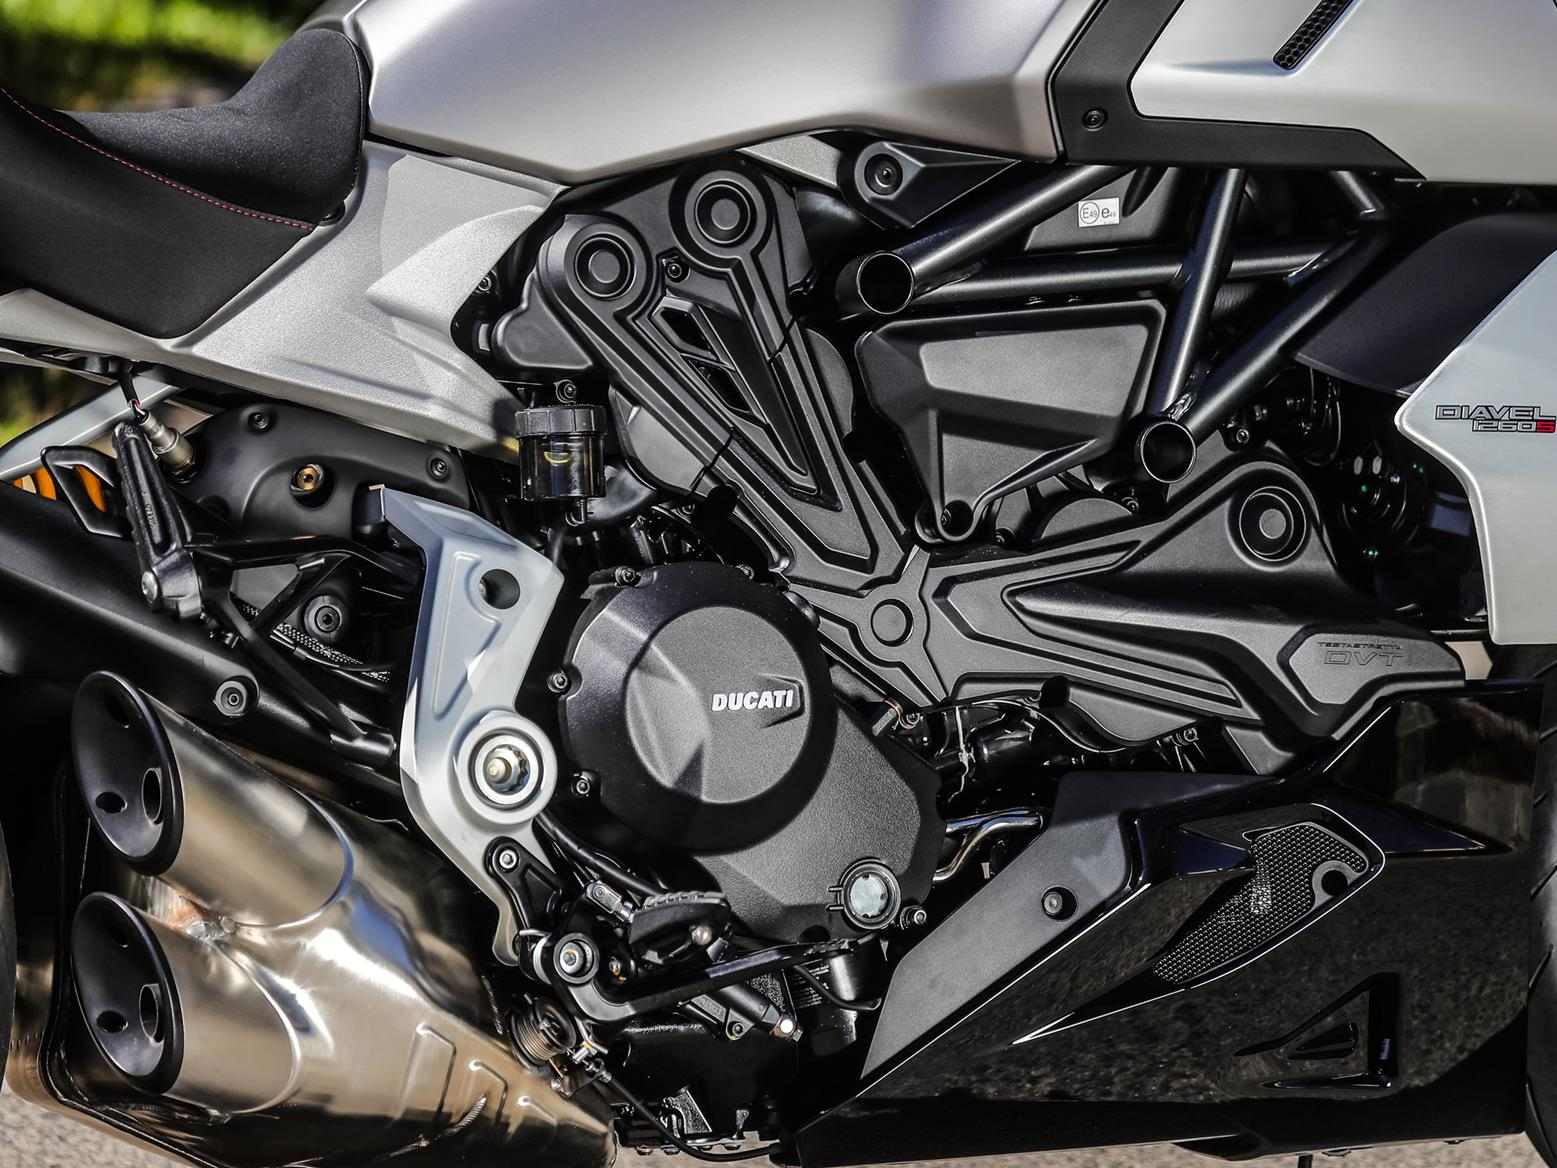 The Ducati Diavel 1260 motor